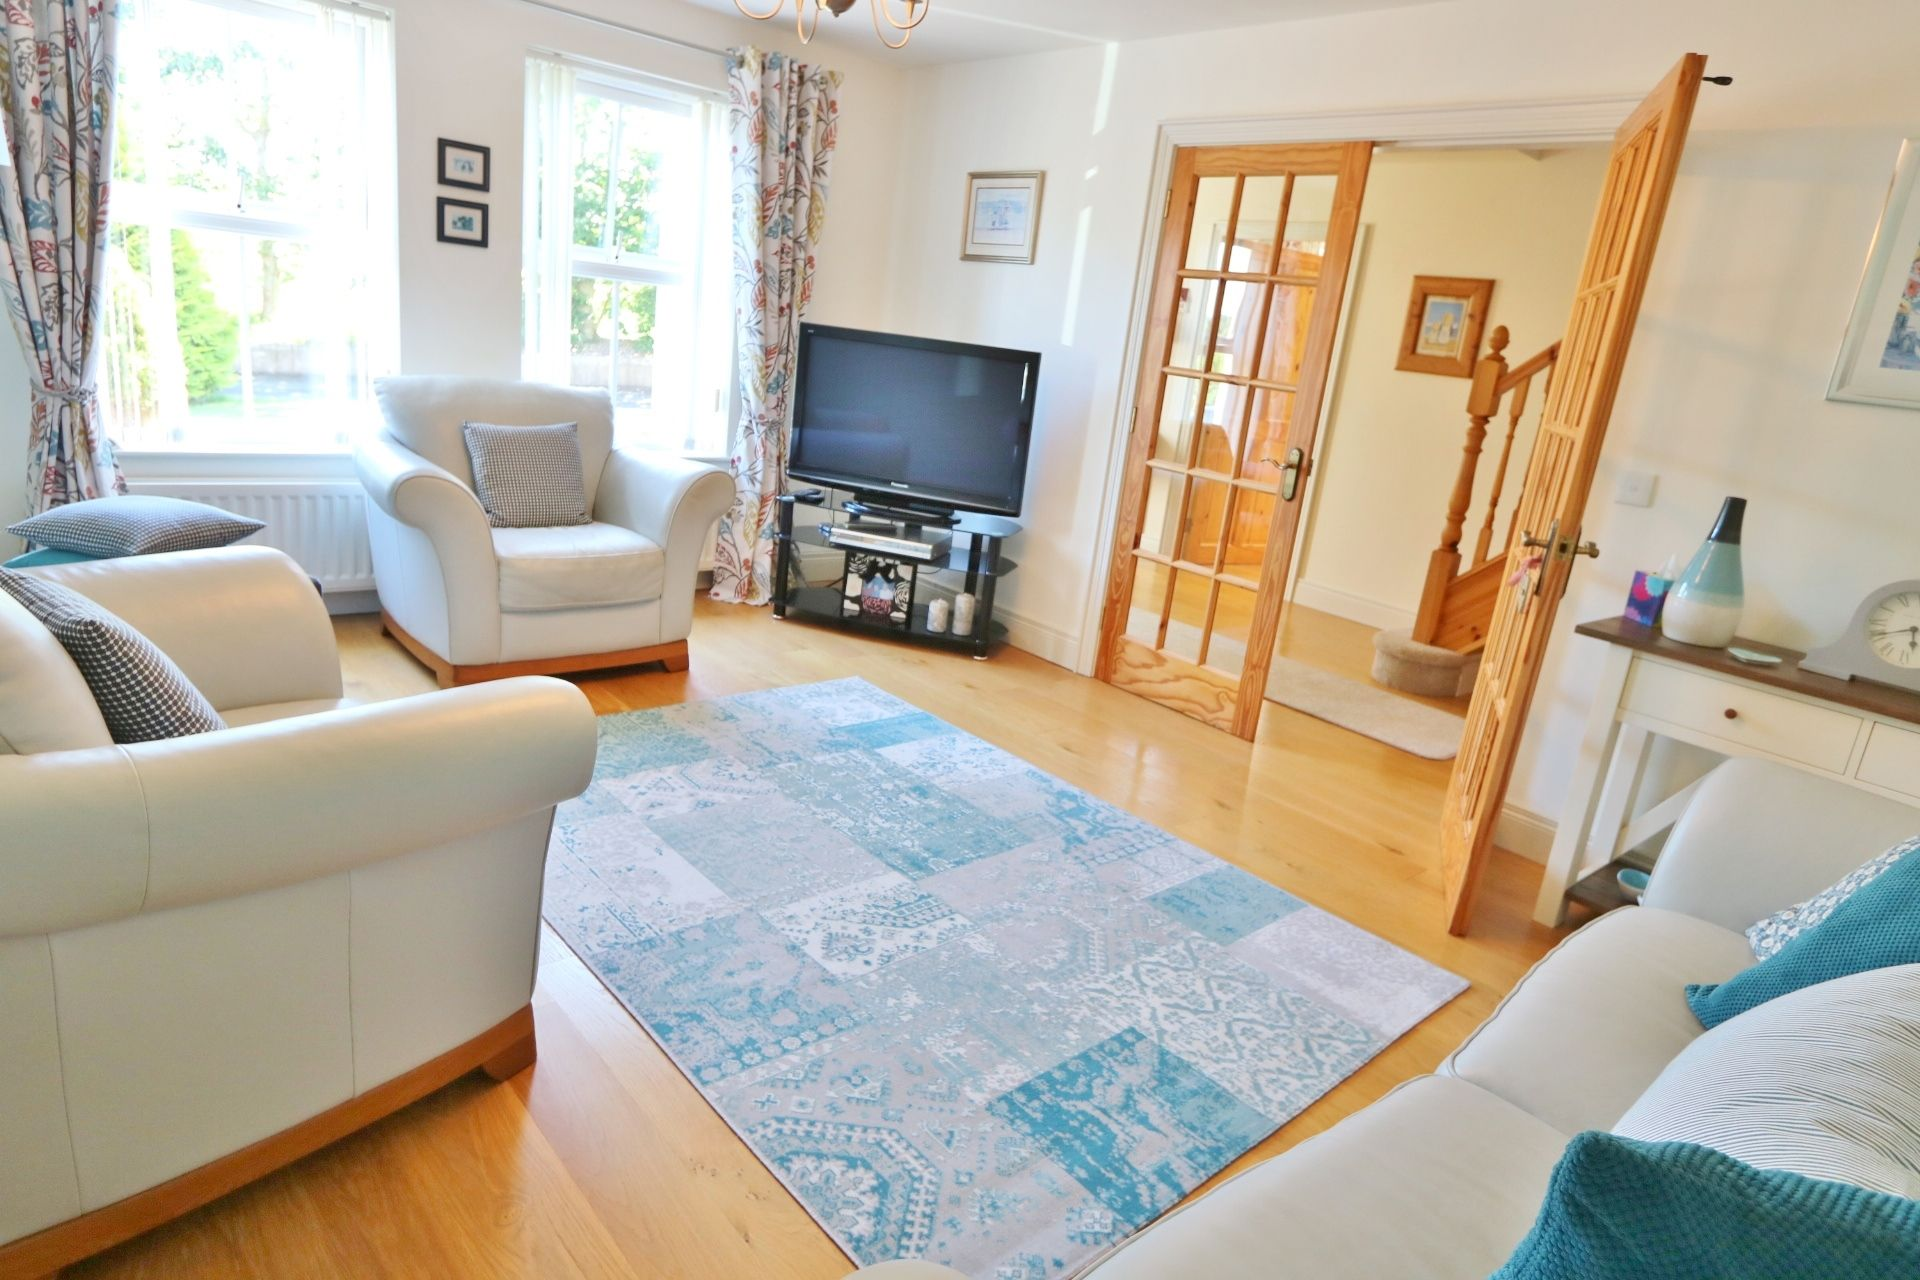 5 bedroom detached house For Sale in Antrim - Property photograph